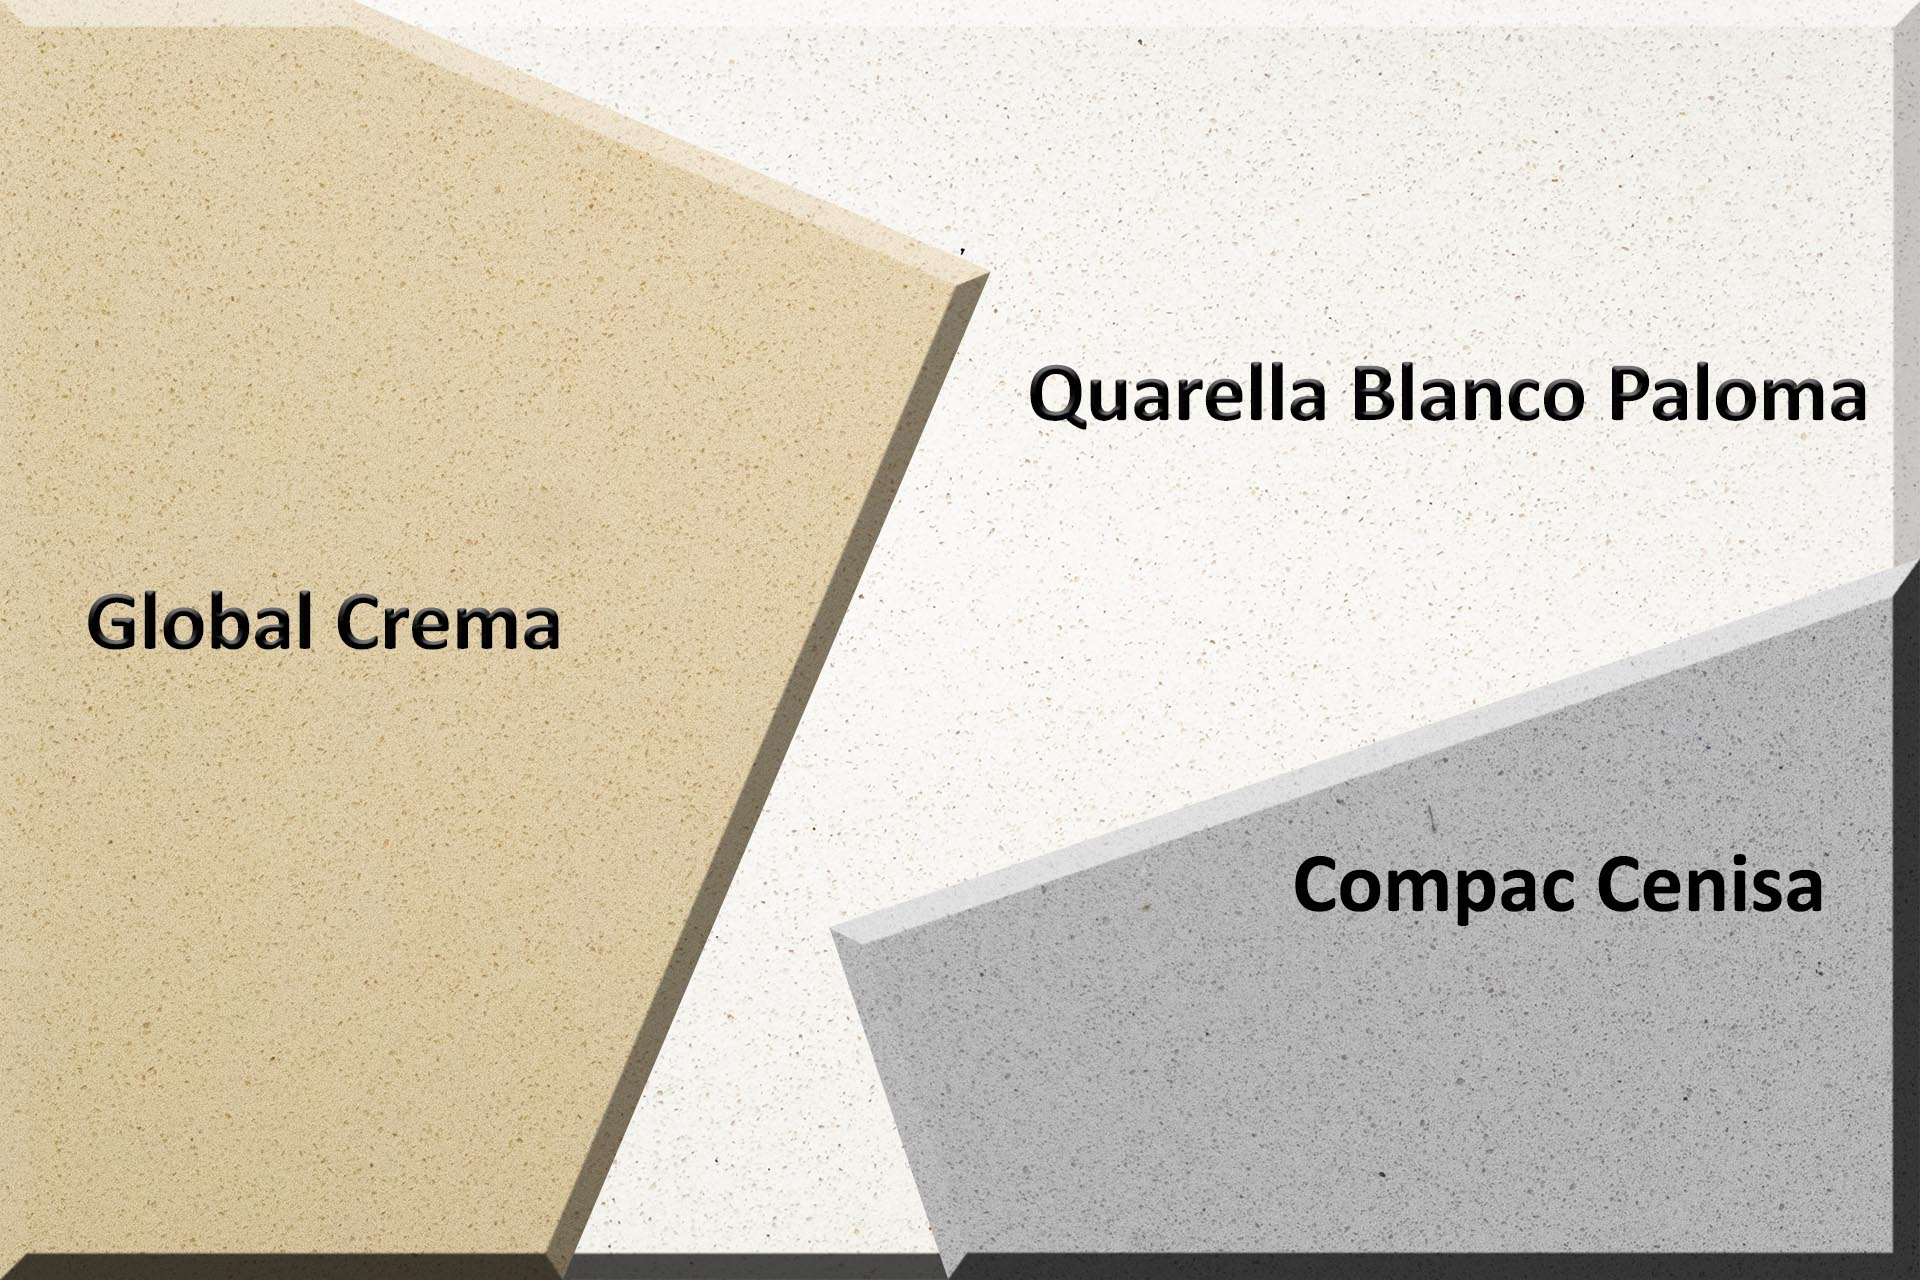 global crema compac cenisa quarella blanco paloma quartz worktops special offer 2 by 3